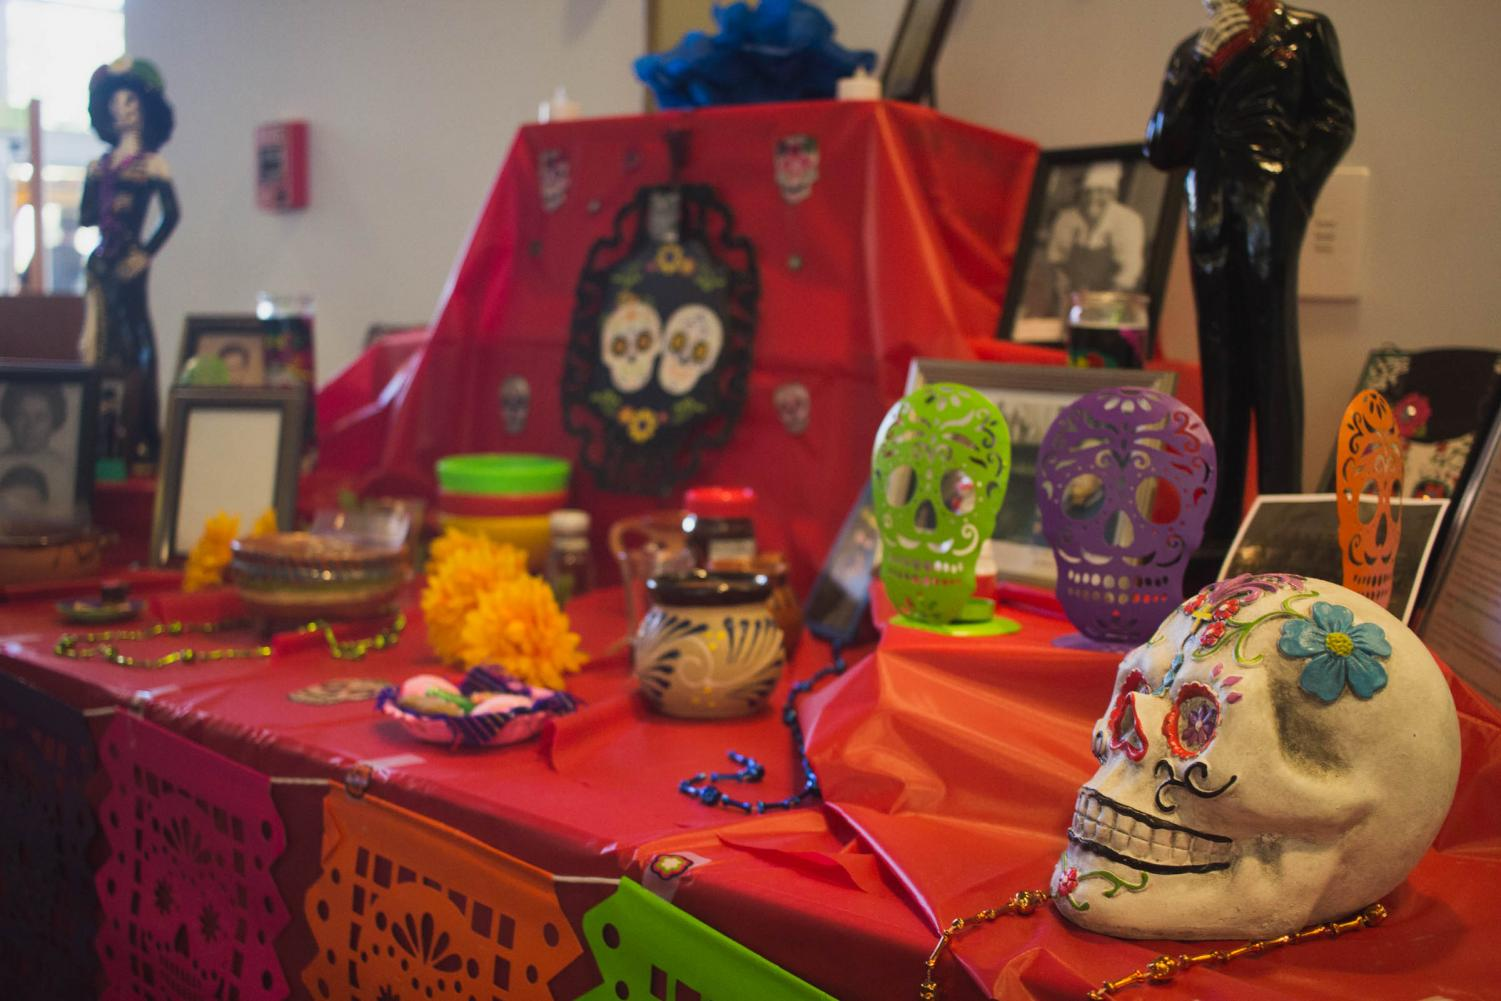 The staff of the Learning Resource Center have a Dia de los Muertos altar set up near the LRC entrance on the second floor of the R building. Photo by Nadia Mishkin, City Times.